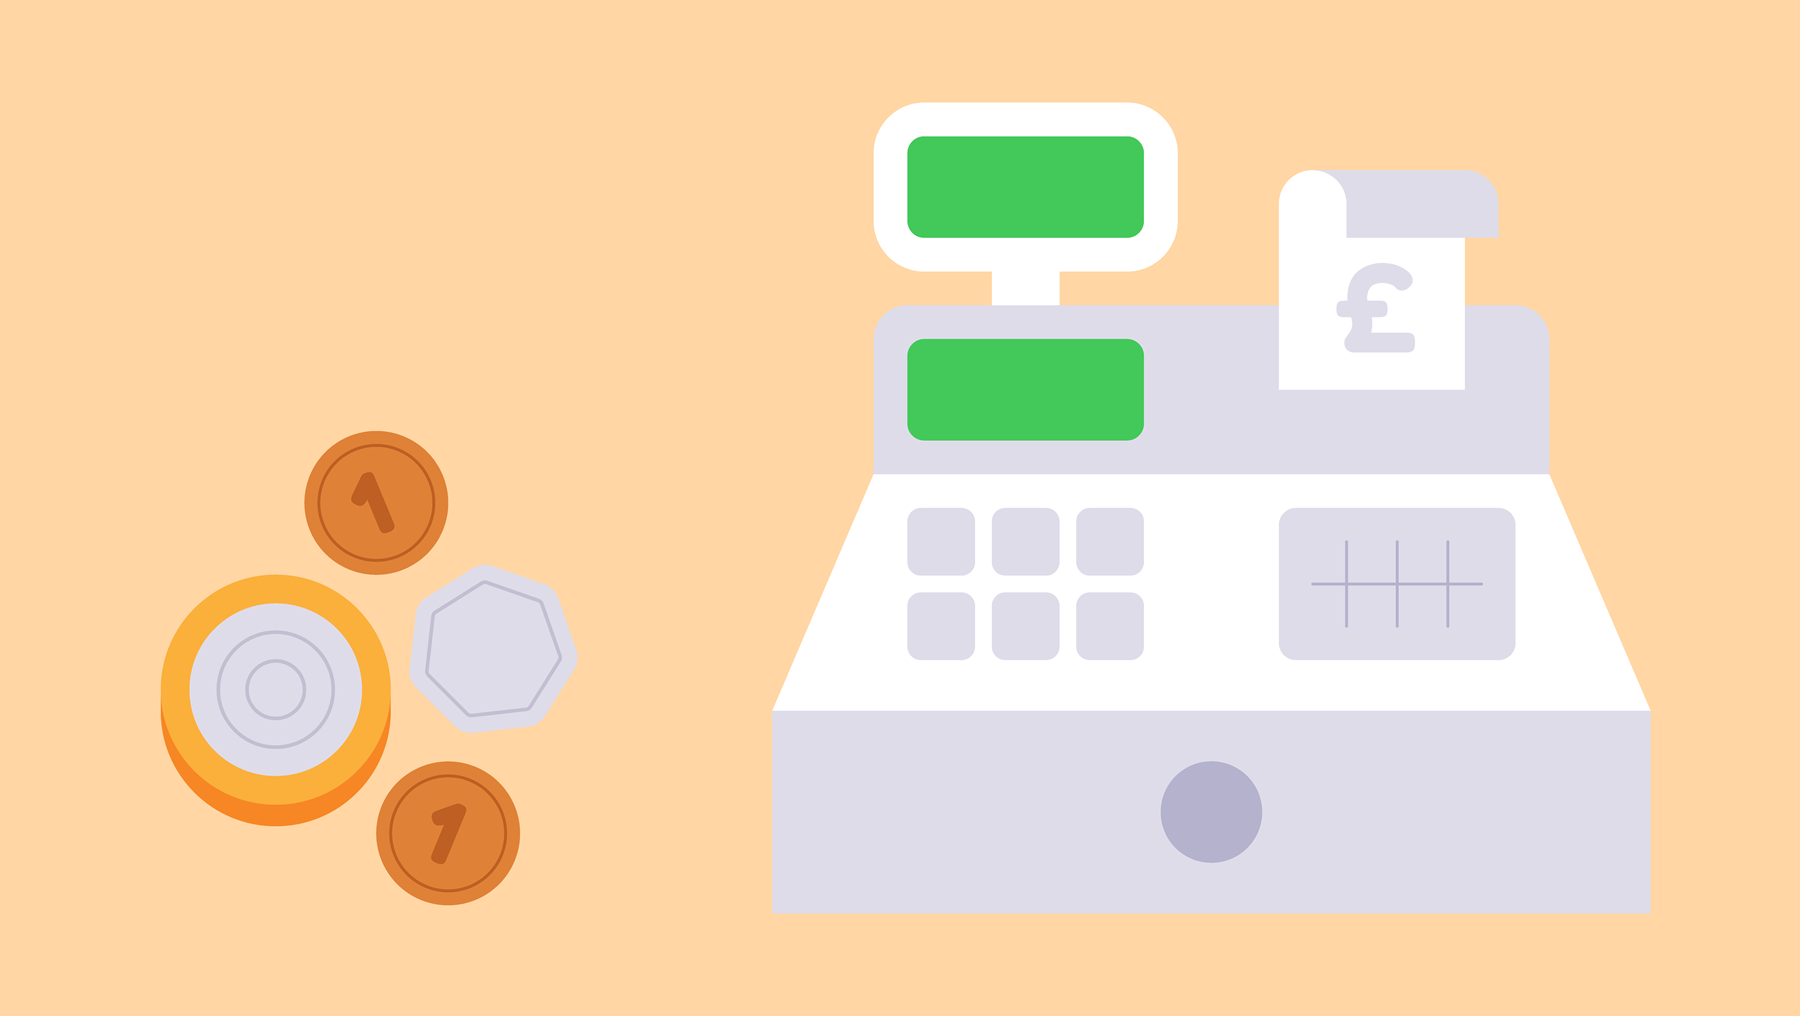 An illustration of some coins next to a cash register.